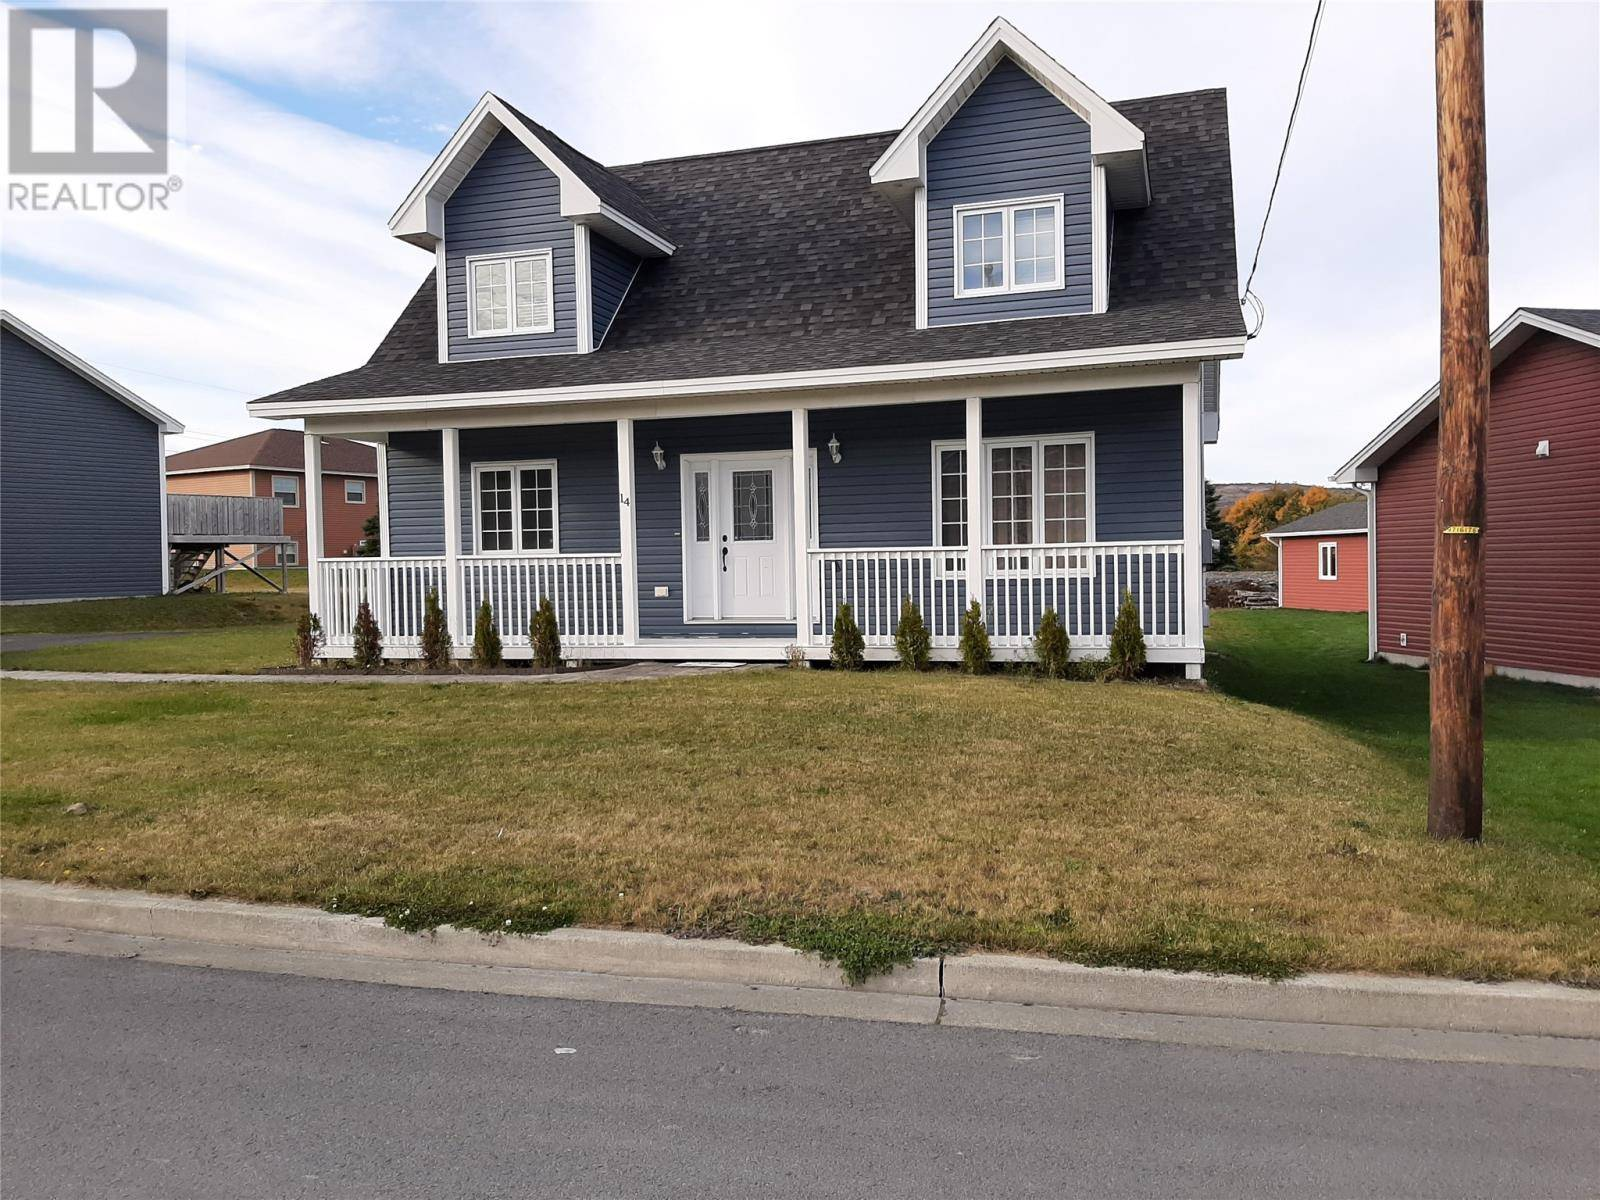 House for sale at 14 D'iberville St Carbonear Newfoundland - MLS: 1205344